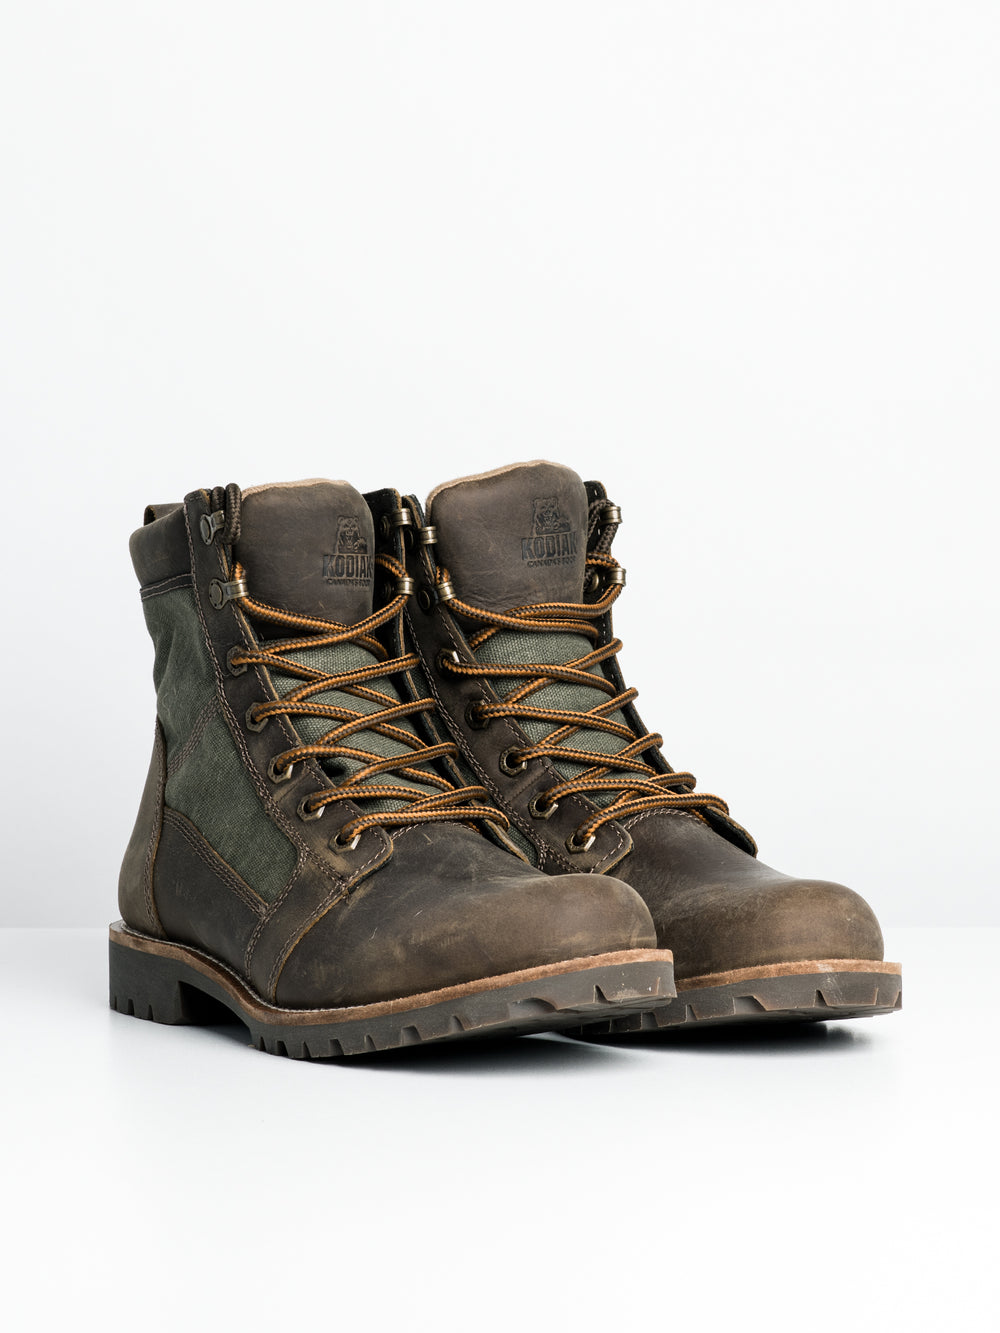 MENS THANE 6' BOOT - OLIVE GREEN